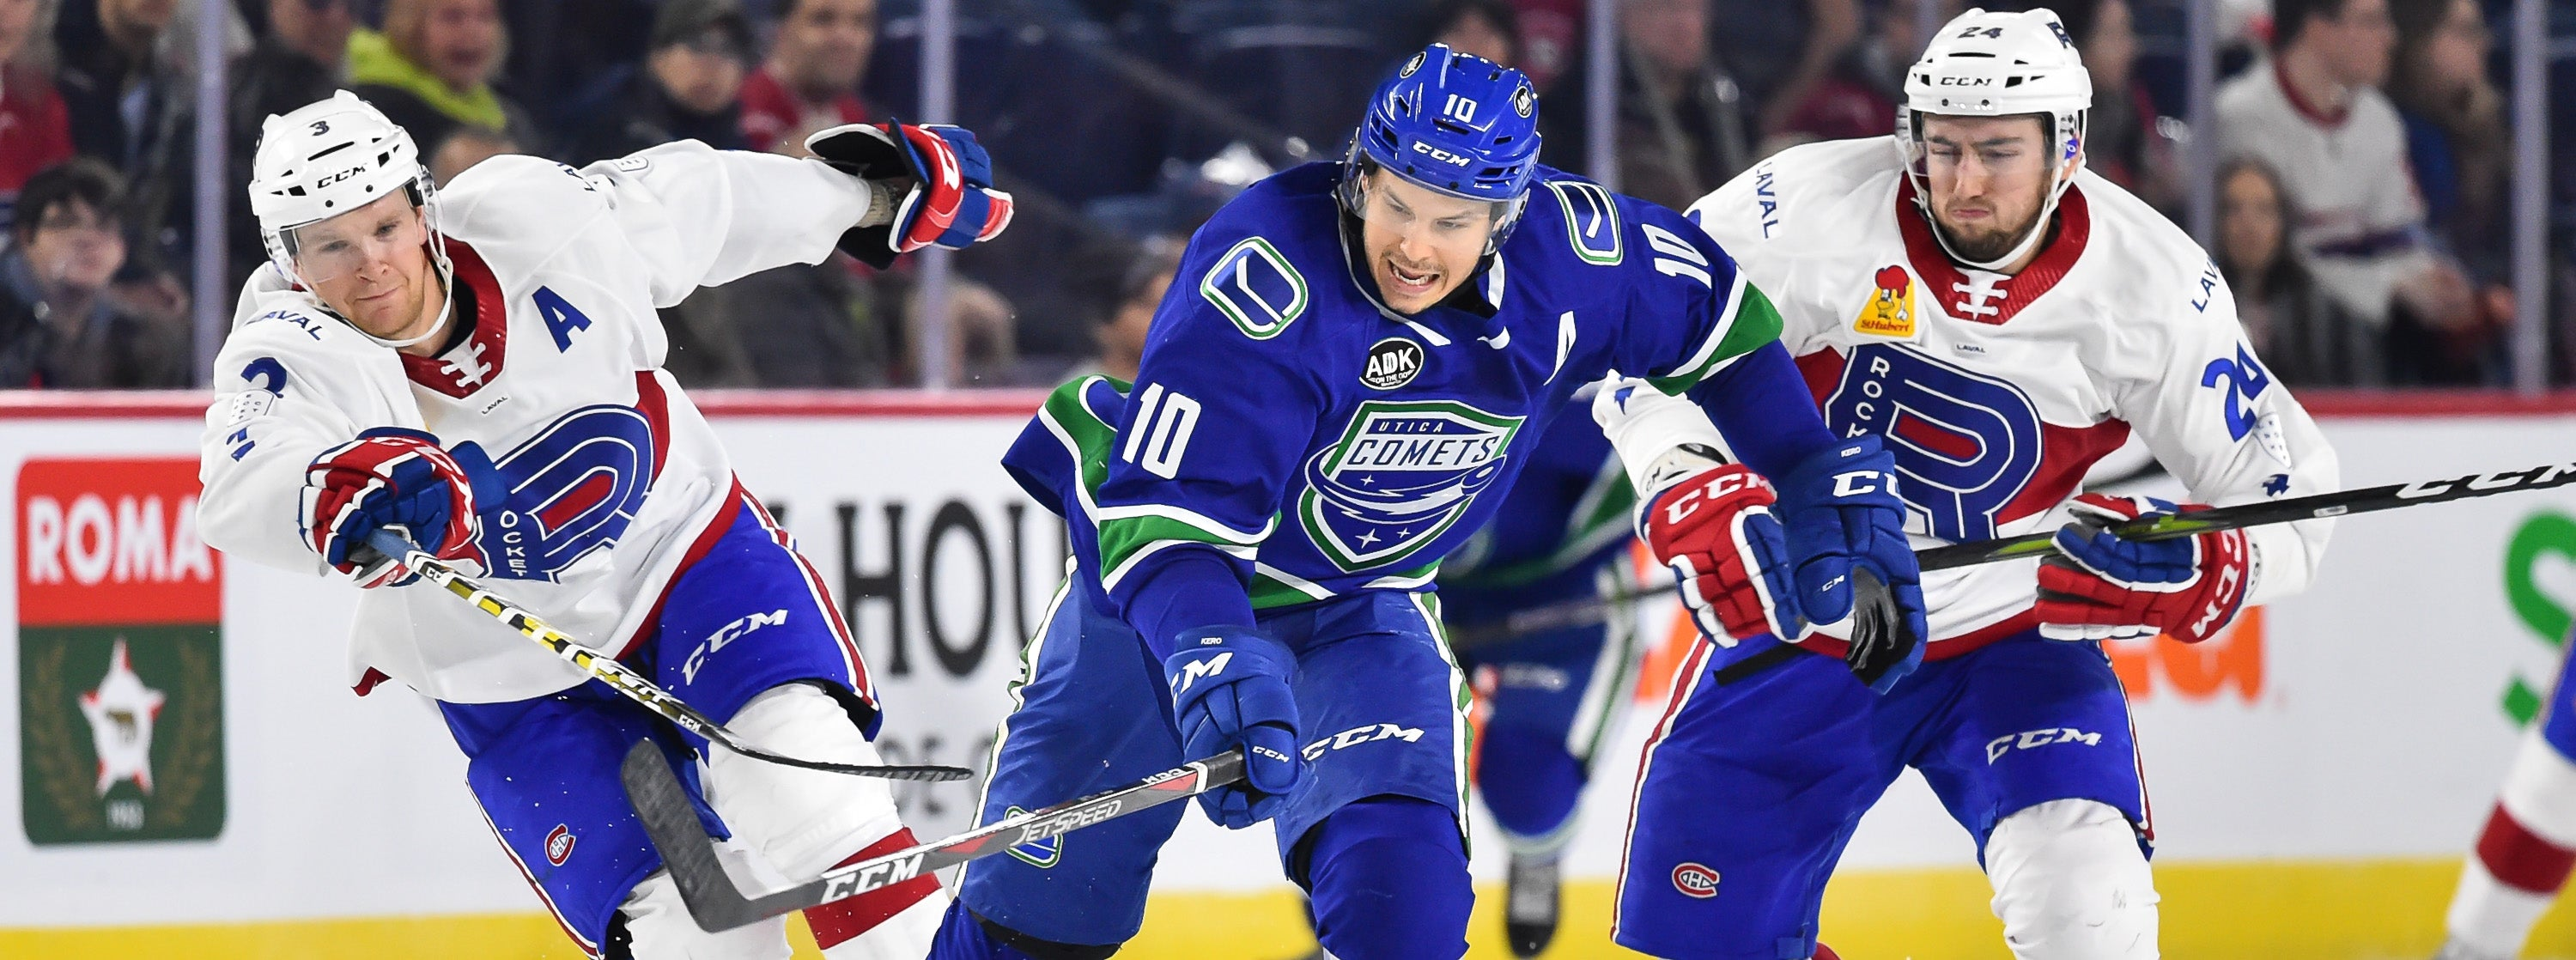 COMETS FALL TO ROCKET IN OVERTIME